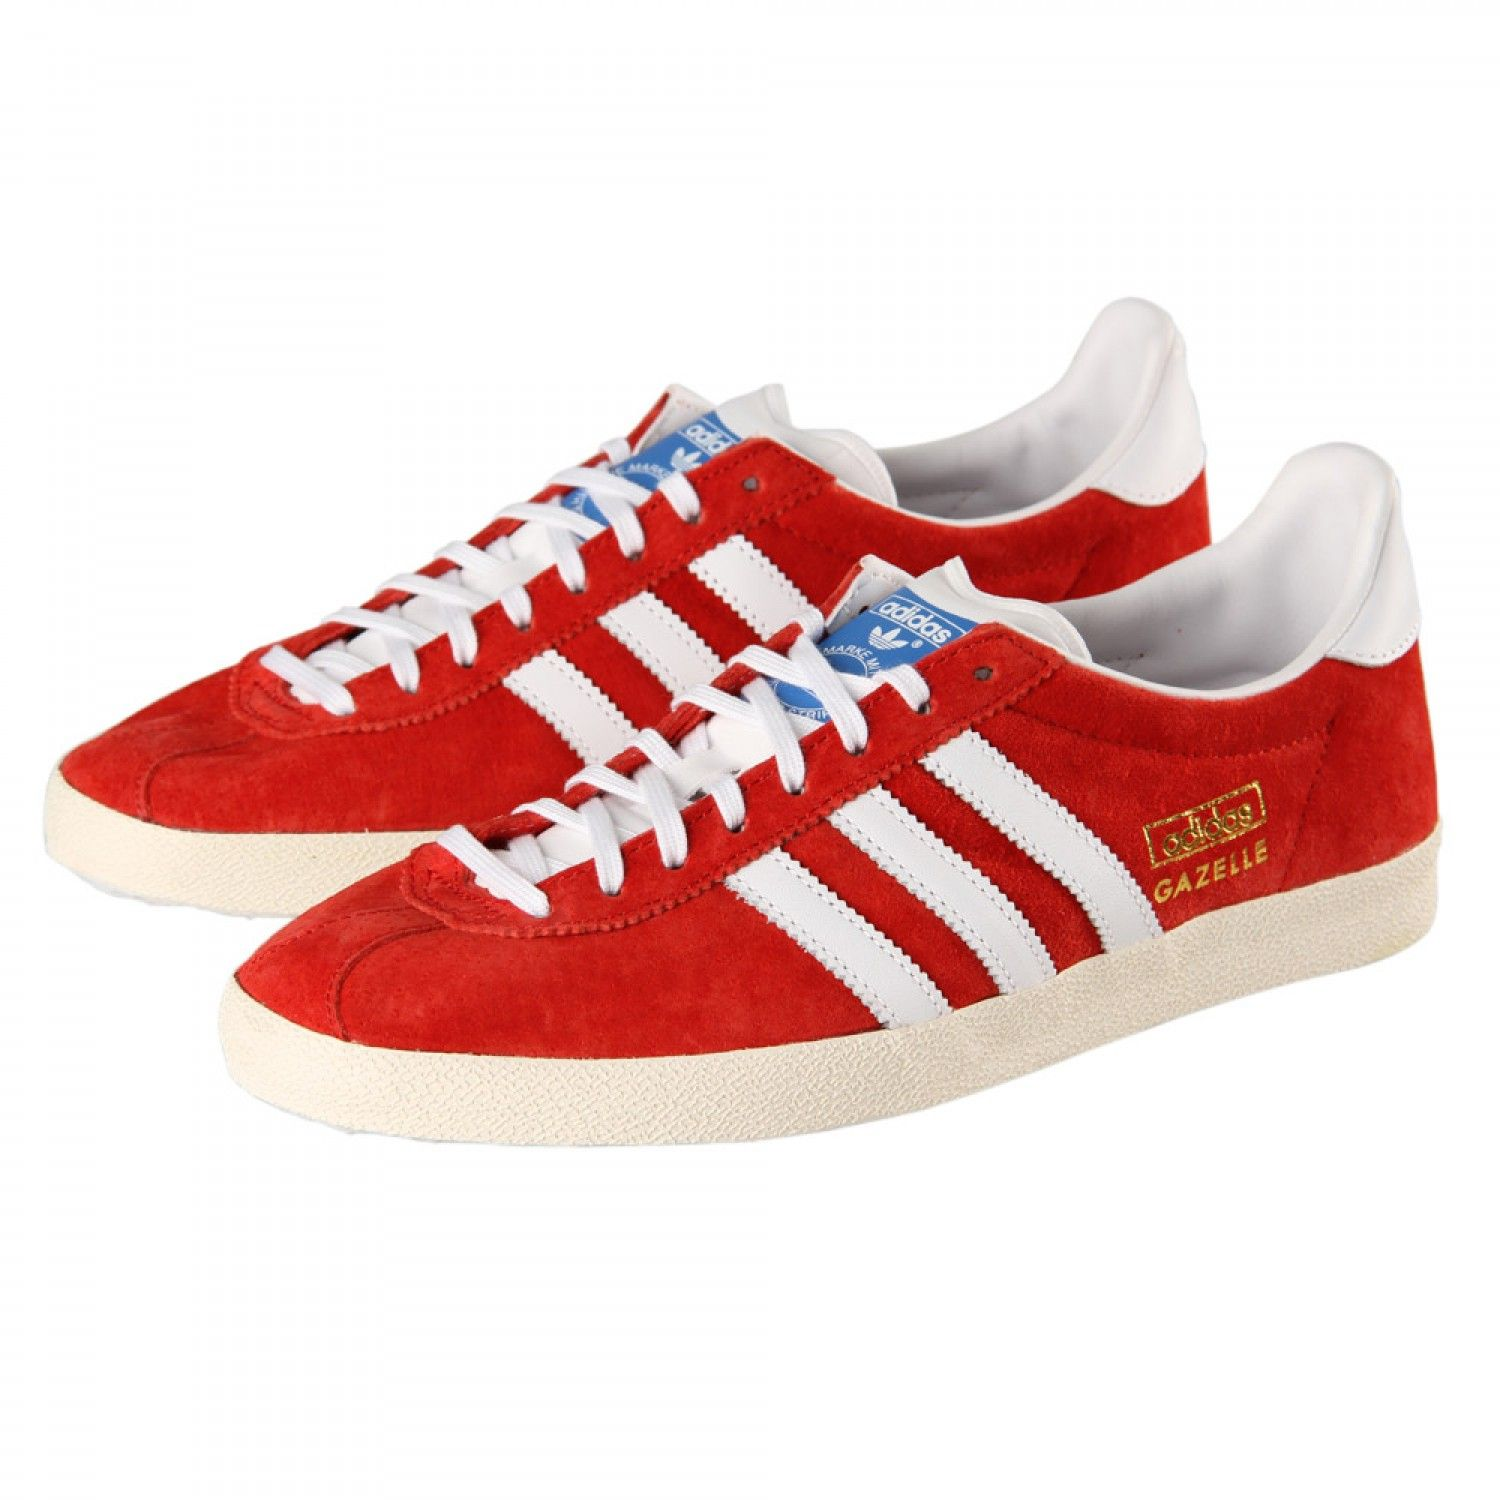 adidas originals gazelle og red